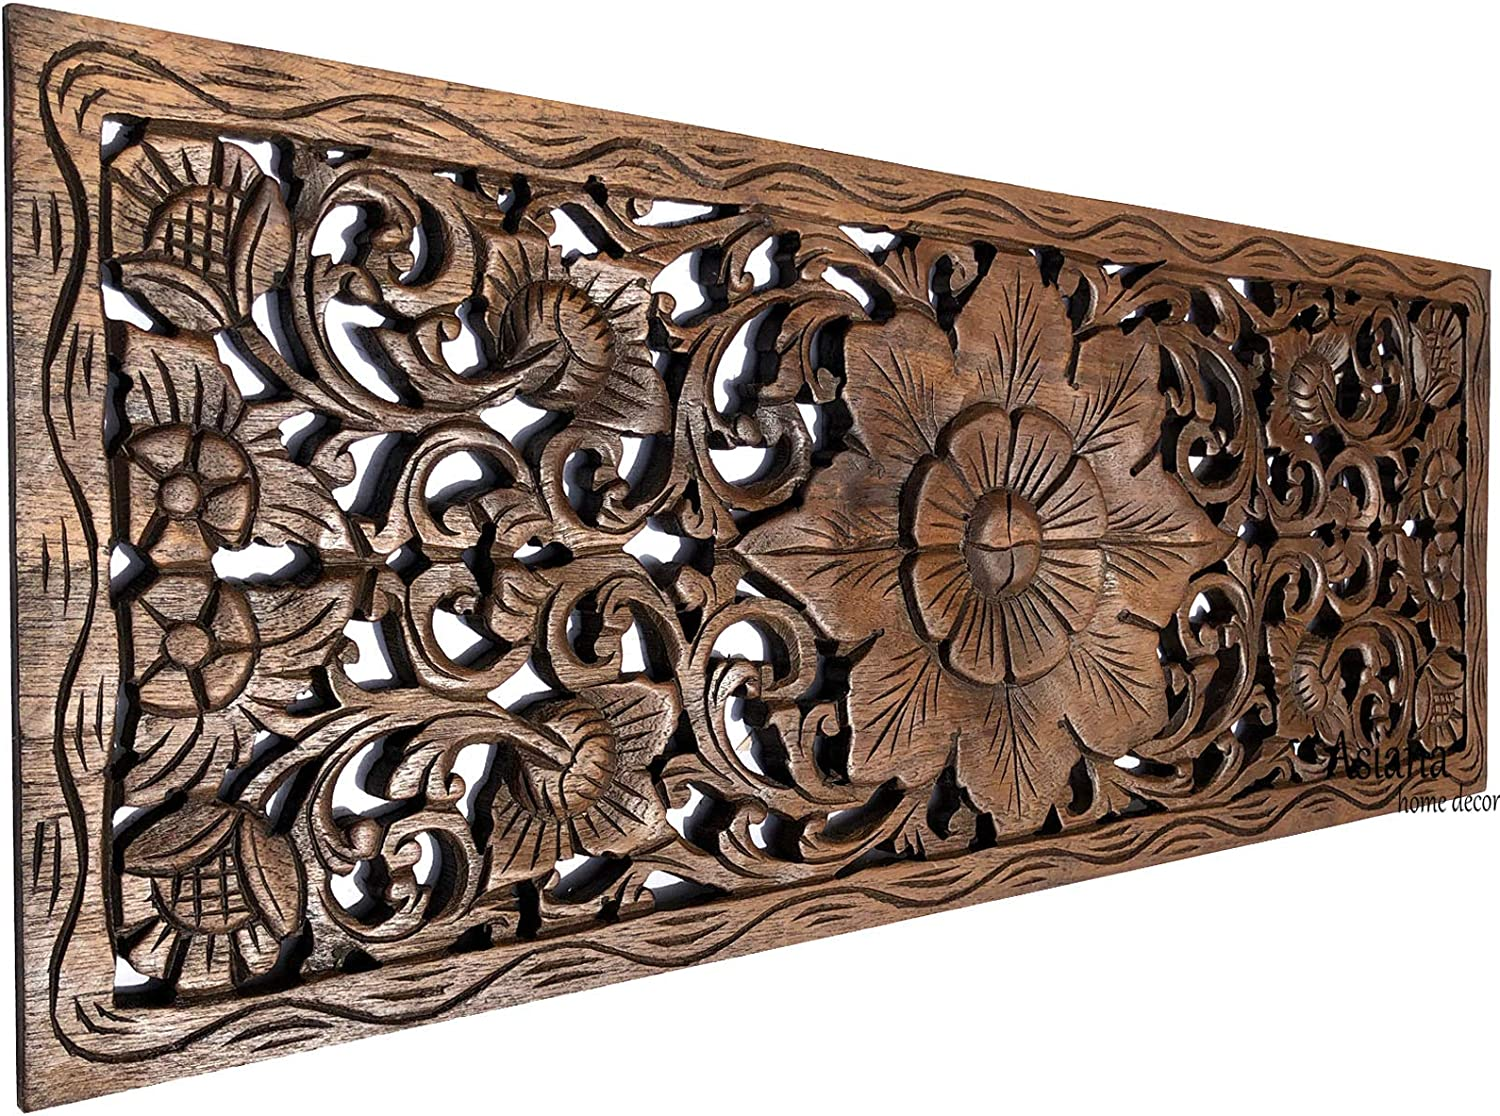 "Asiana Home Decor Large Carved Wood Wall Panel. Floral Wood Carved Wall Decor. Size 35.5""x13.5""x0.5"" (Brown-Teak)"